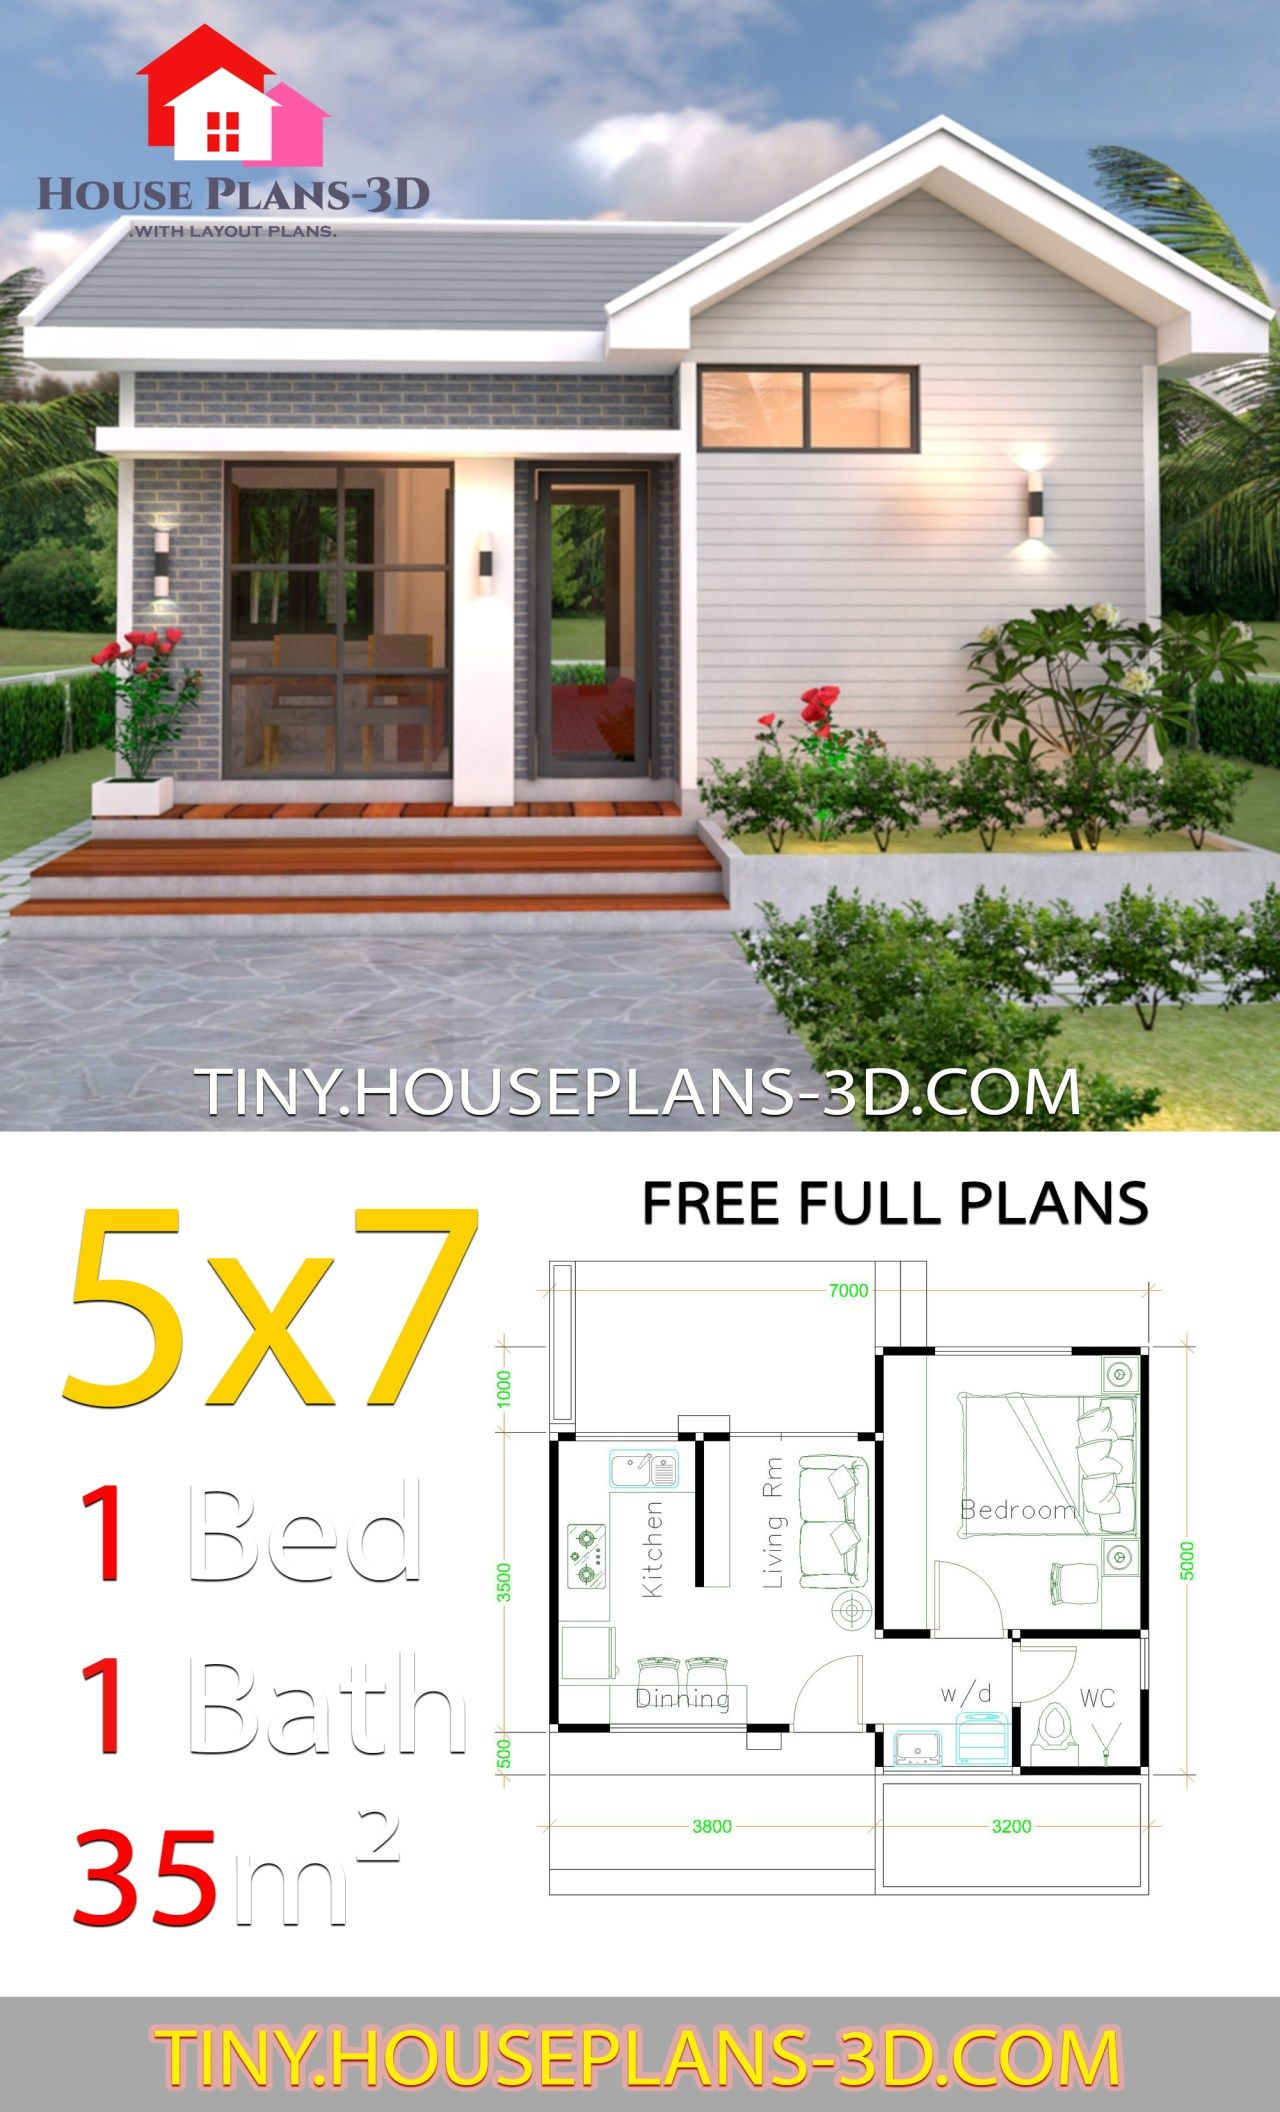 Small House Design Plans 5x7 With One Bedroom Gable Roof Tiny House Plans Guest House Plans Small House Design Plans House Plans